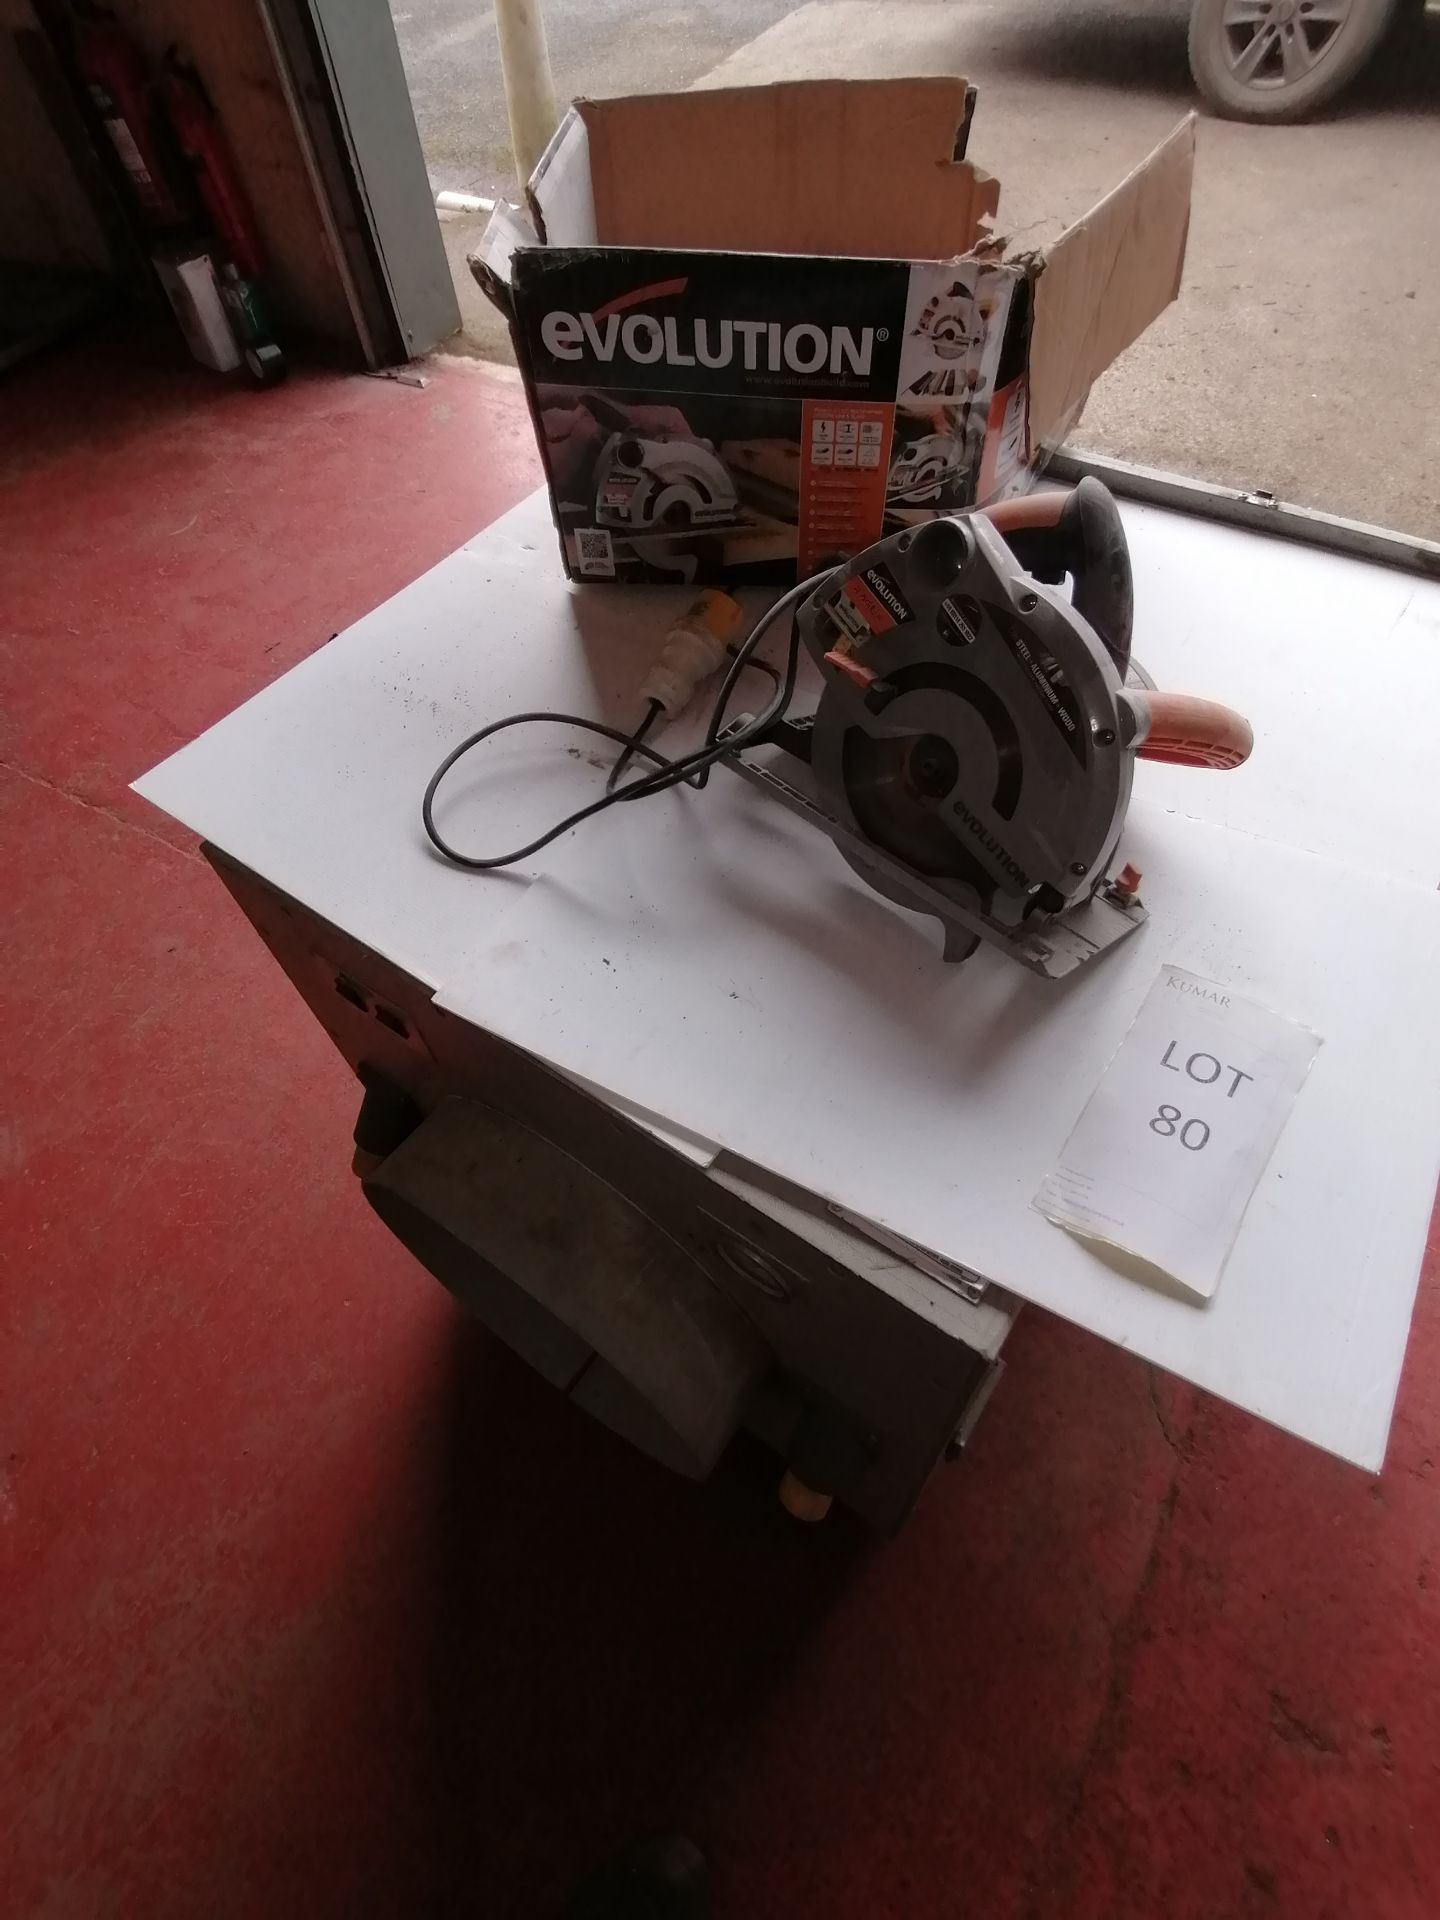 Evolution Multi Purpose Circular Saw. Model Ragea 185mm 110v